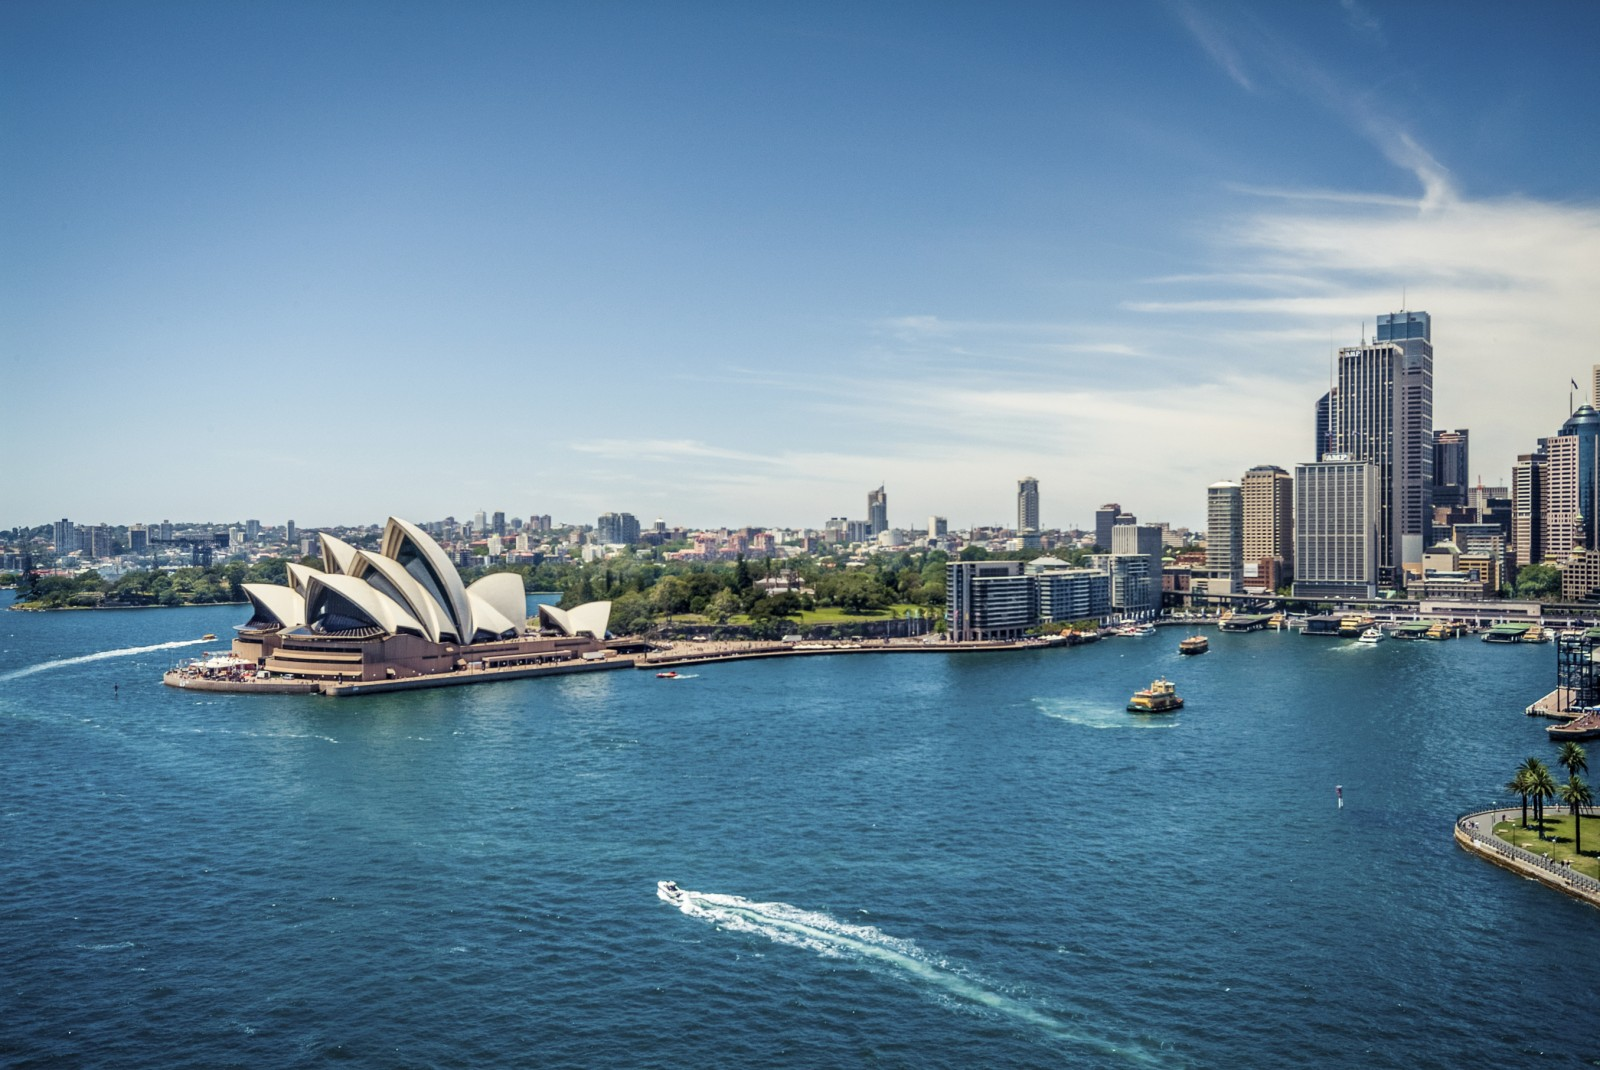 Cross-channel Campaign Management Sydney